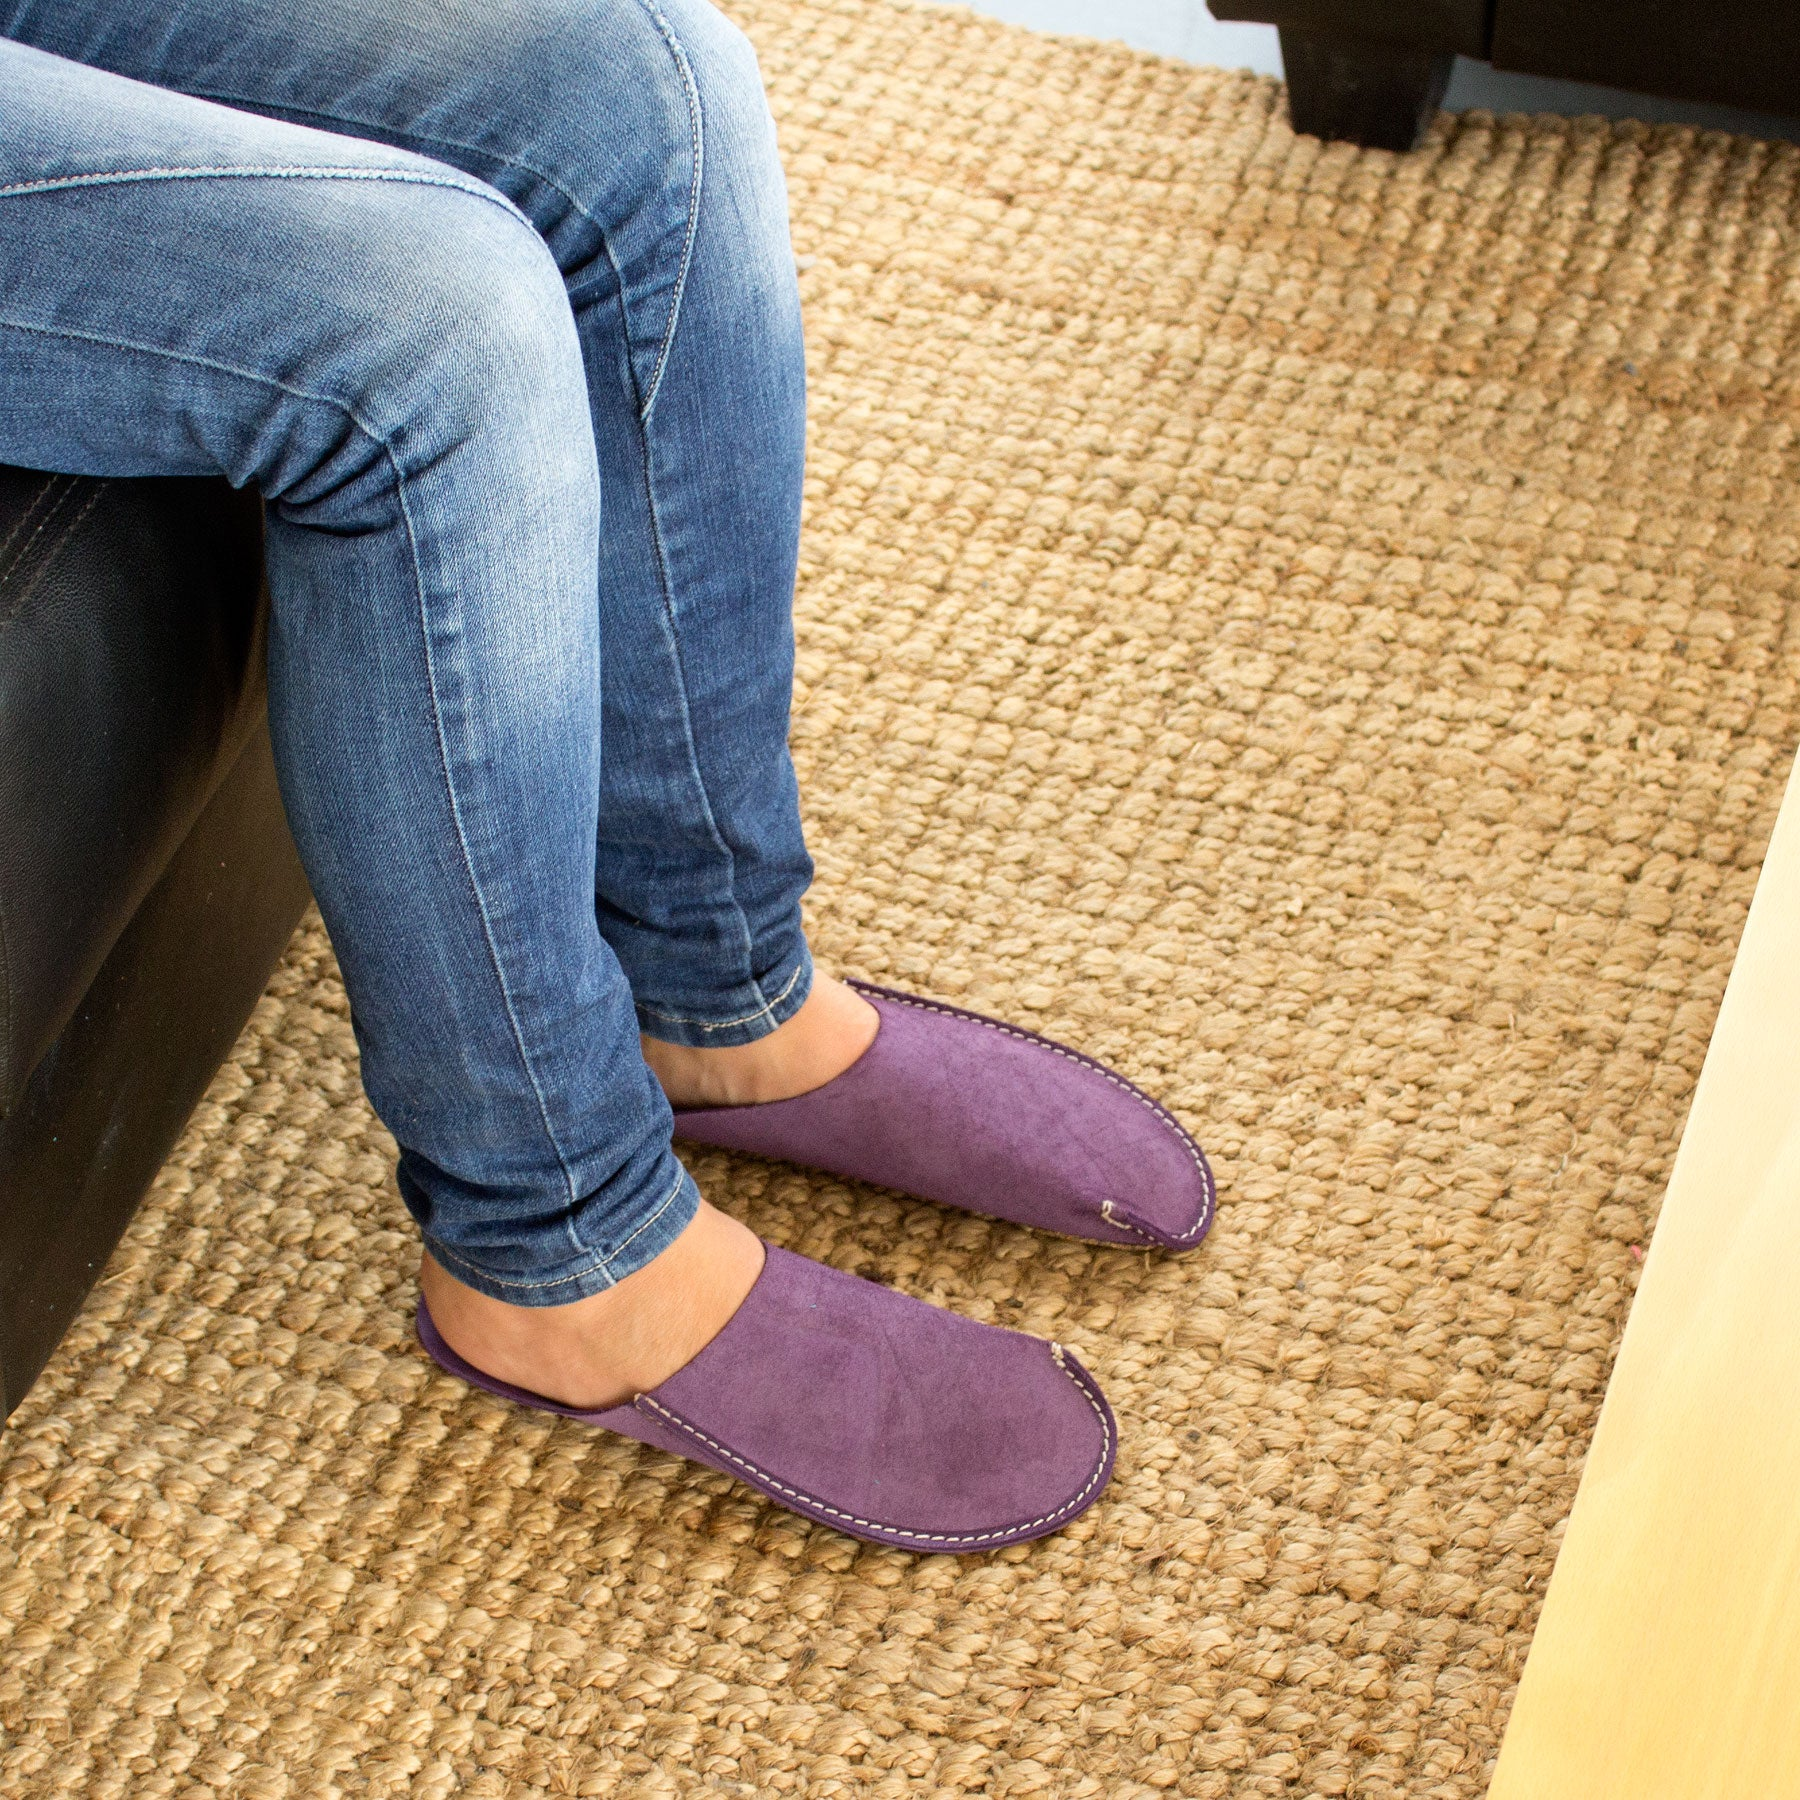 Violet CP Slippers Minimalist home shoes for man and woman at home